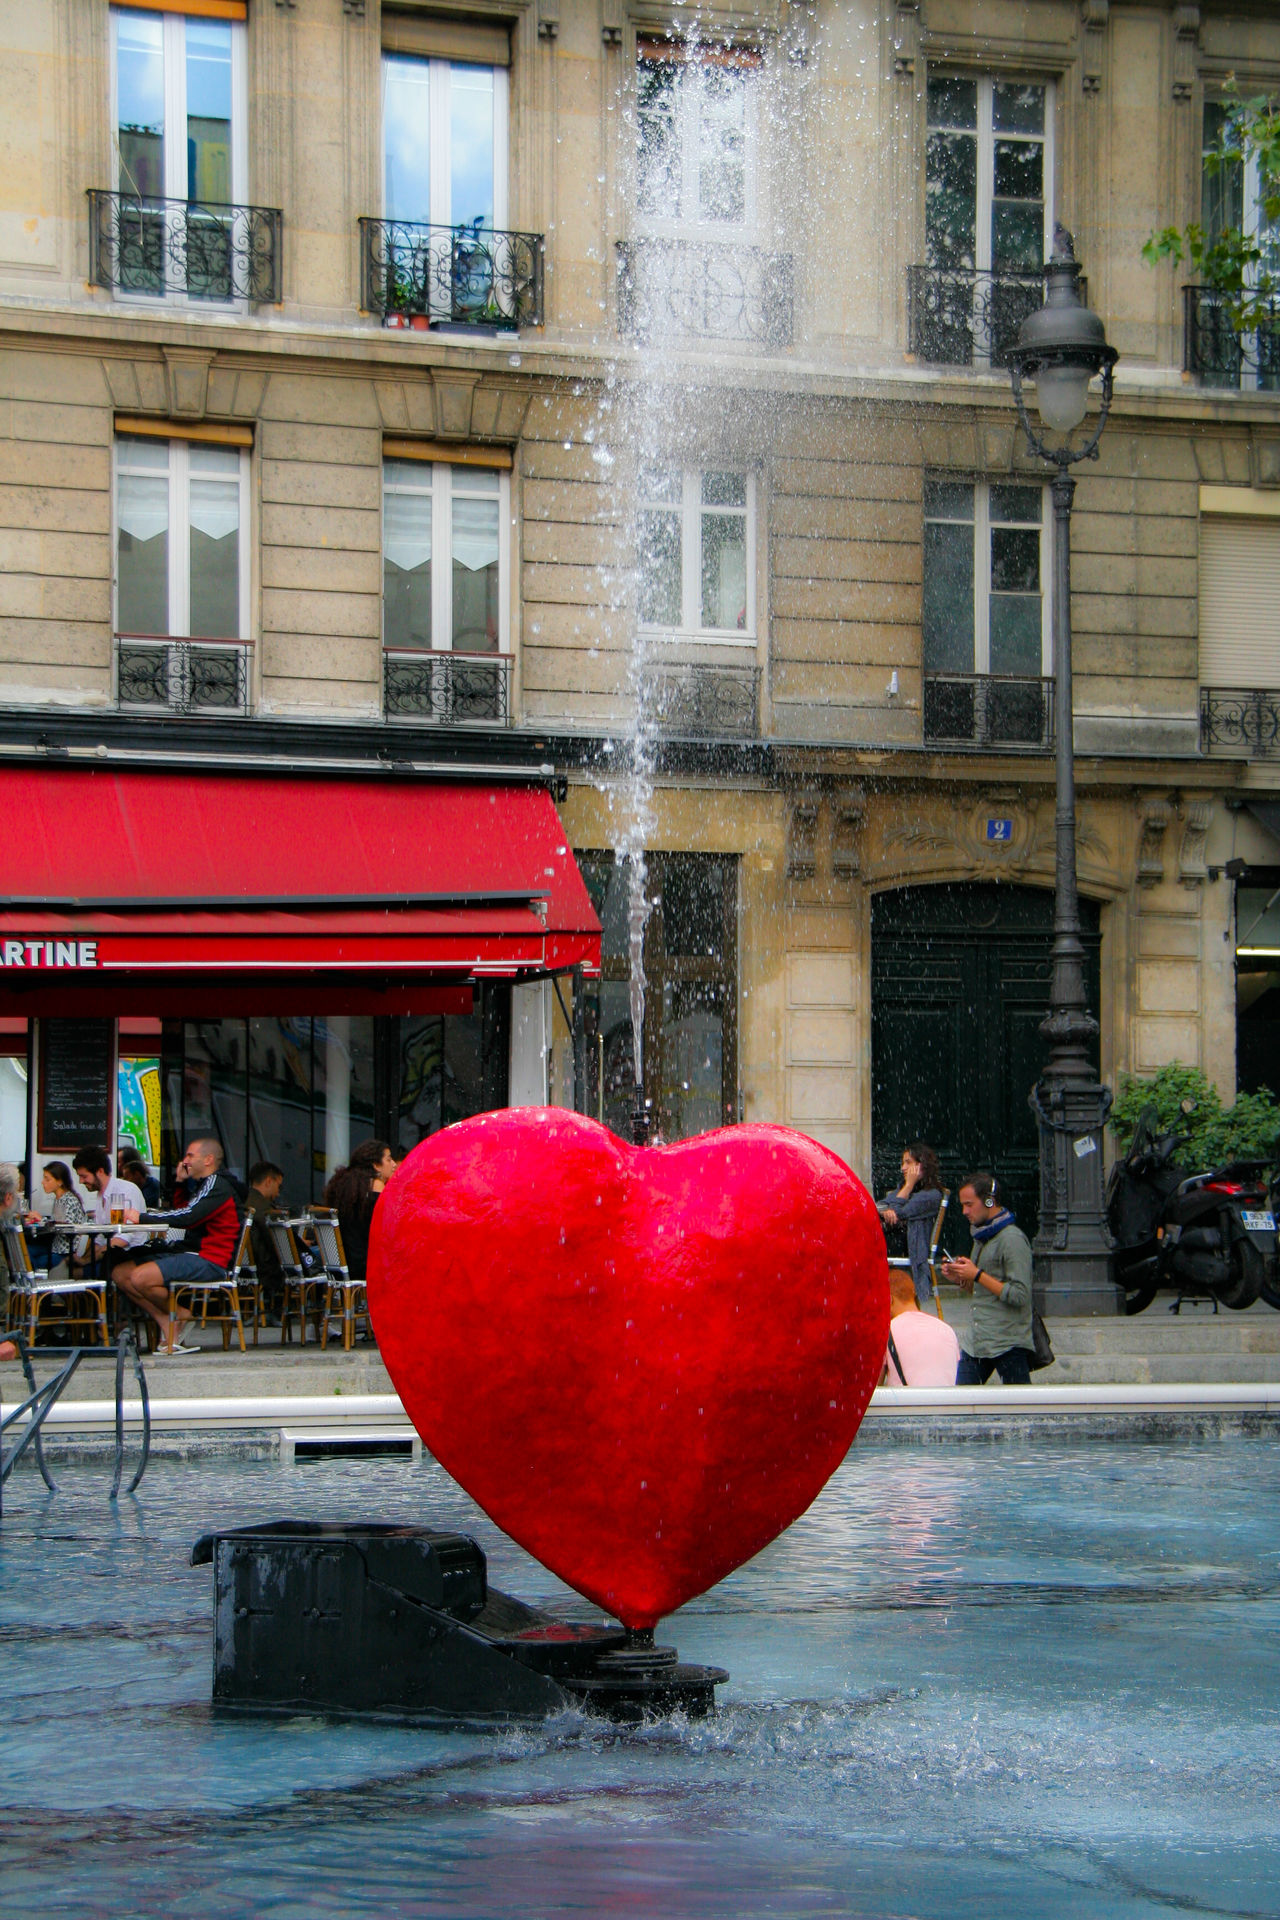 My Favorite Place Centre Georges Pompidou Fuente❤Agua Fuente Architecture Vibrant Color Vacations City Life Red Colorful Red Architecture Building Exterior Built Structure Travel Destinations City Life Day Outdoors Freshness Vacations Vibrant Color Paris Inspire TheWeekOnEyeEM